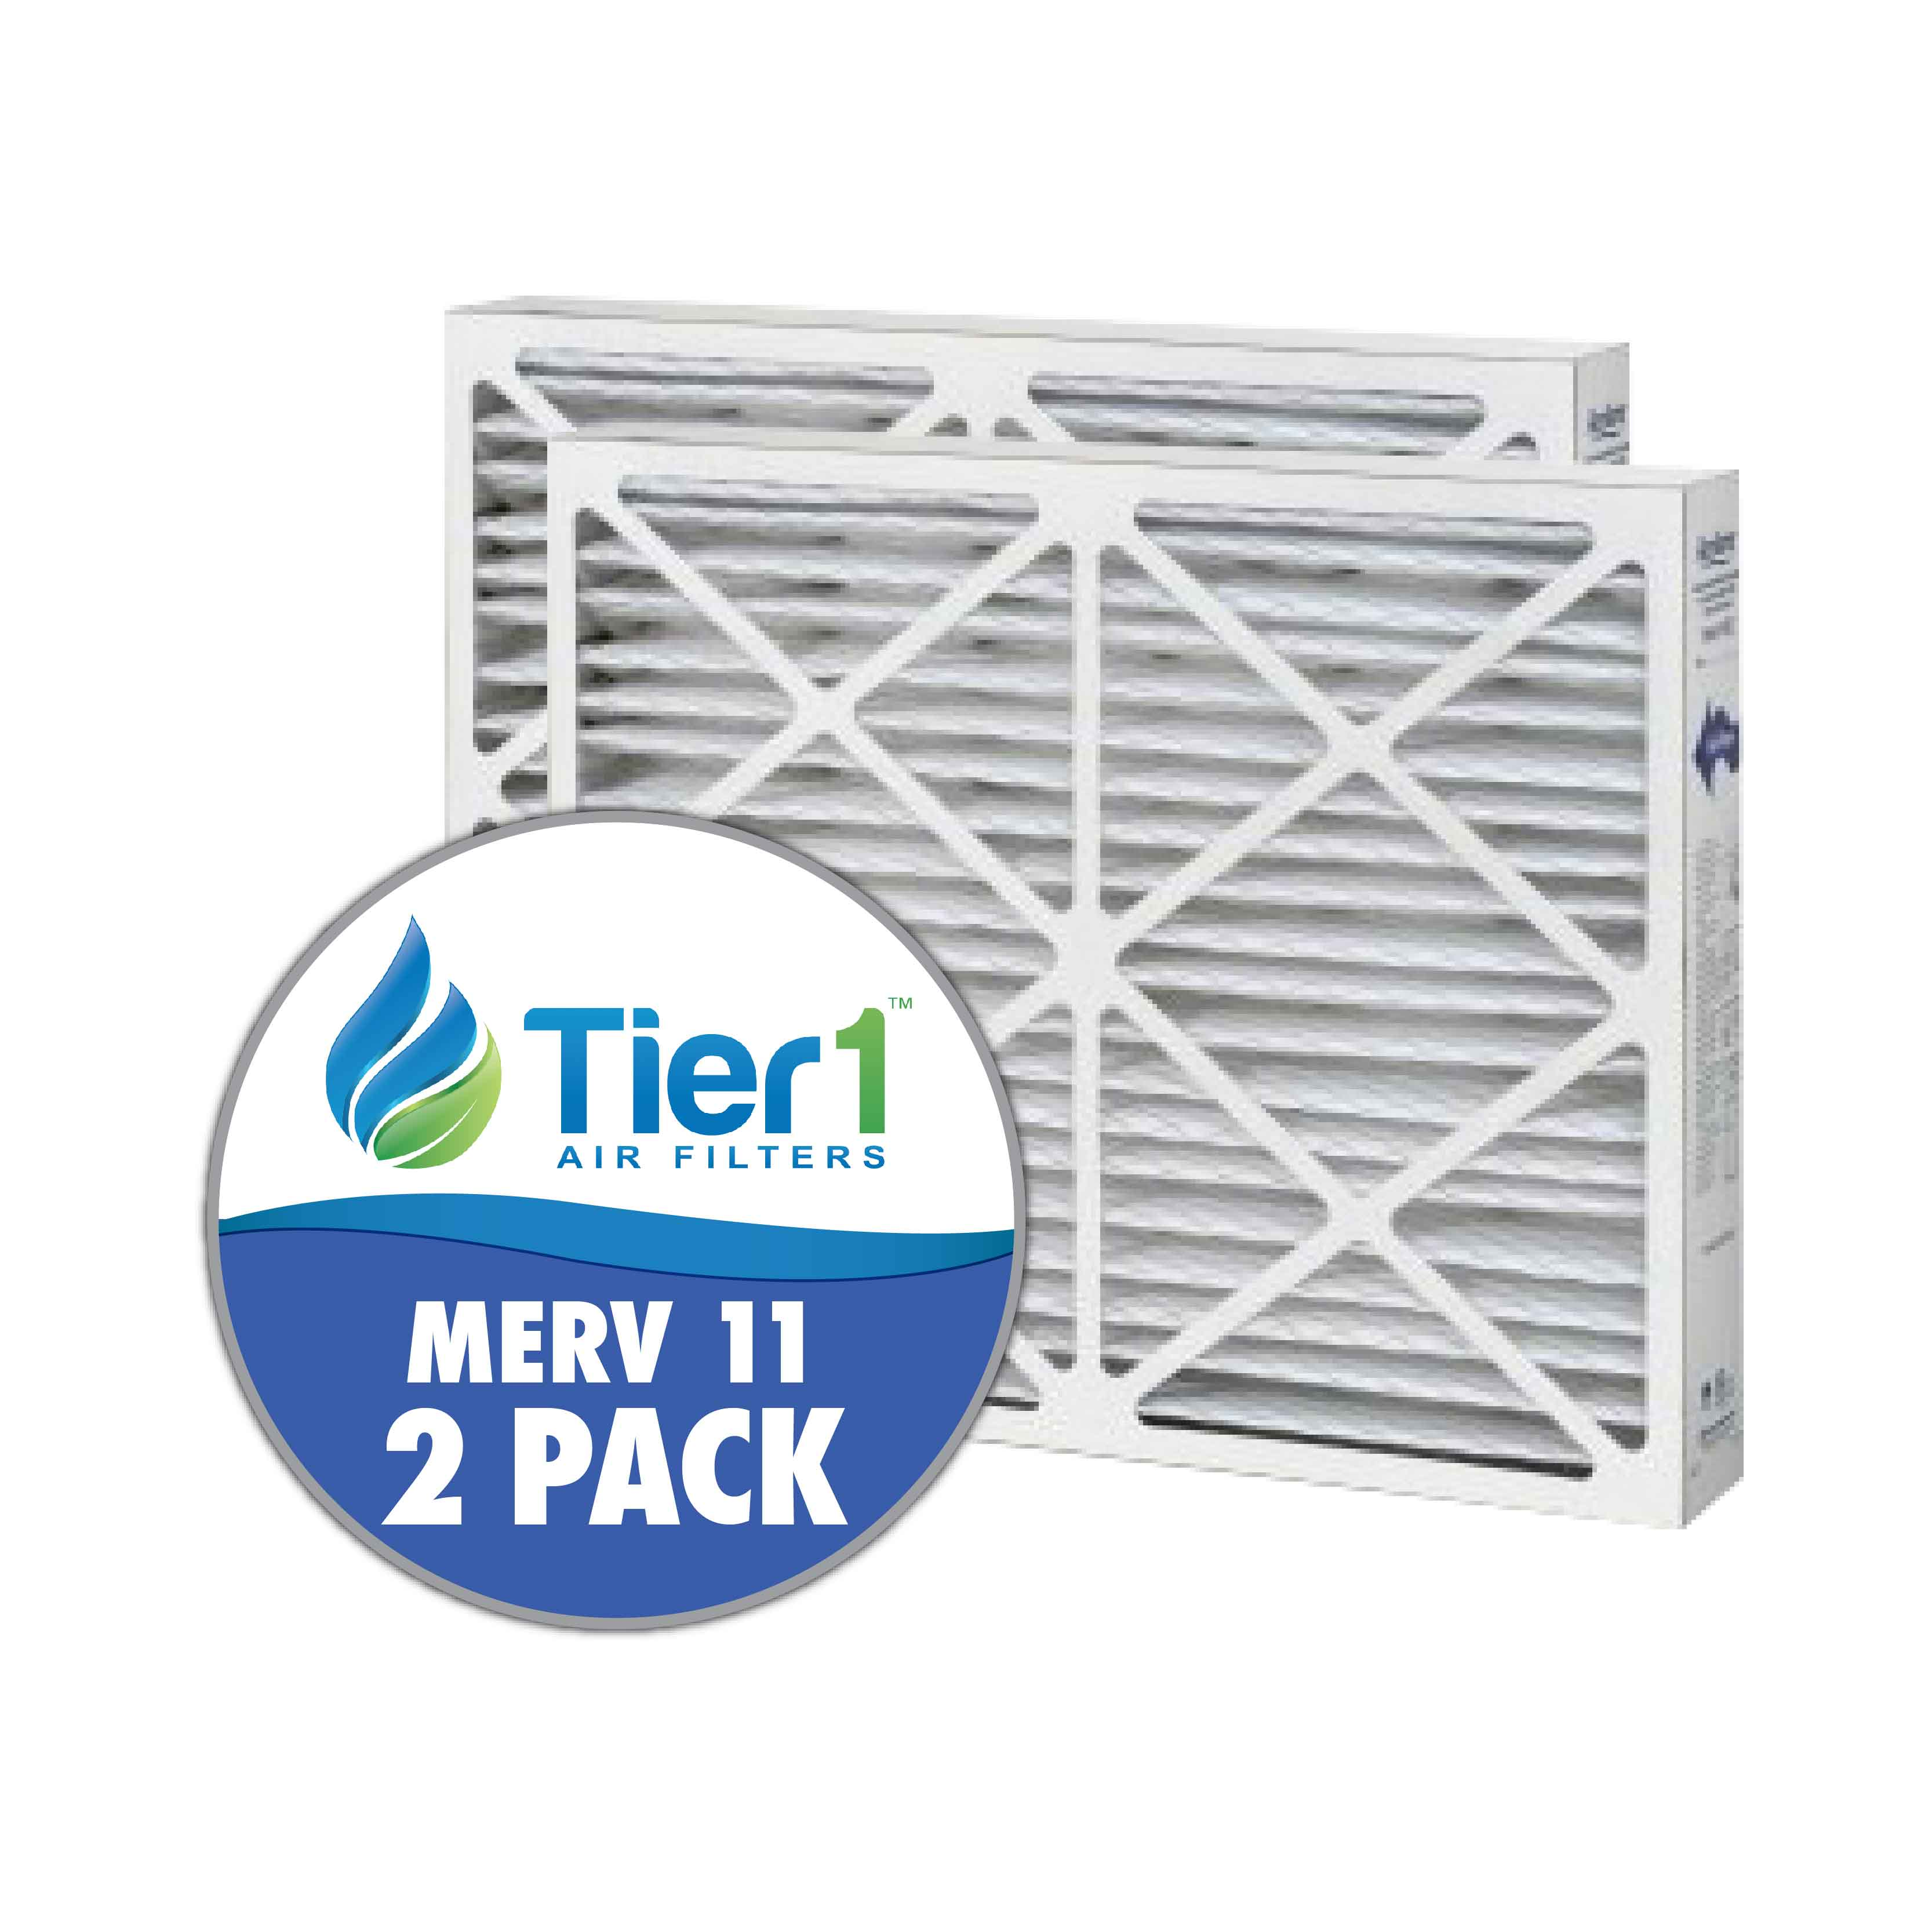 Tier1 brand replacement for Aprilaire #102 - 20 x 25.25 x 3.5 - MERV 11 (2-Pack) TIER1-DPFS20X2525X350M11